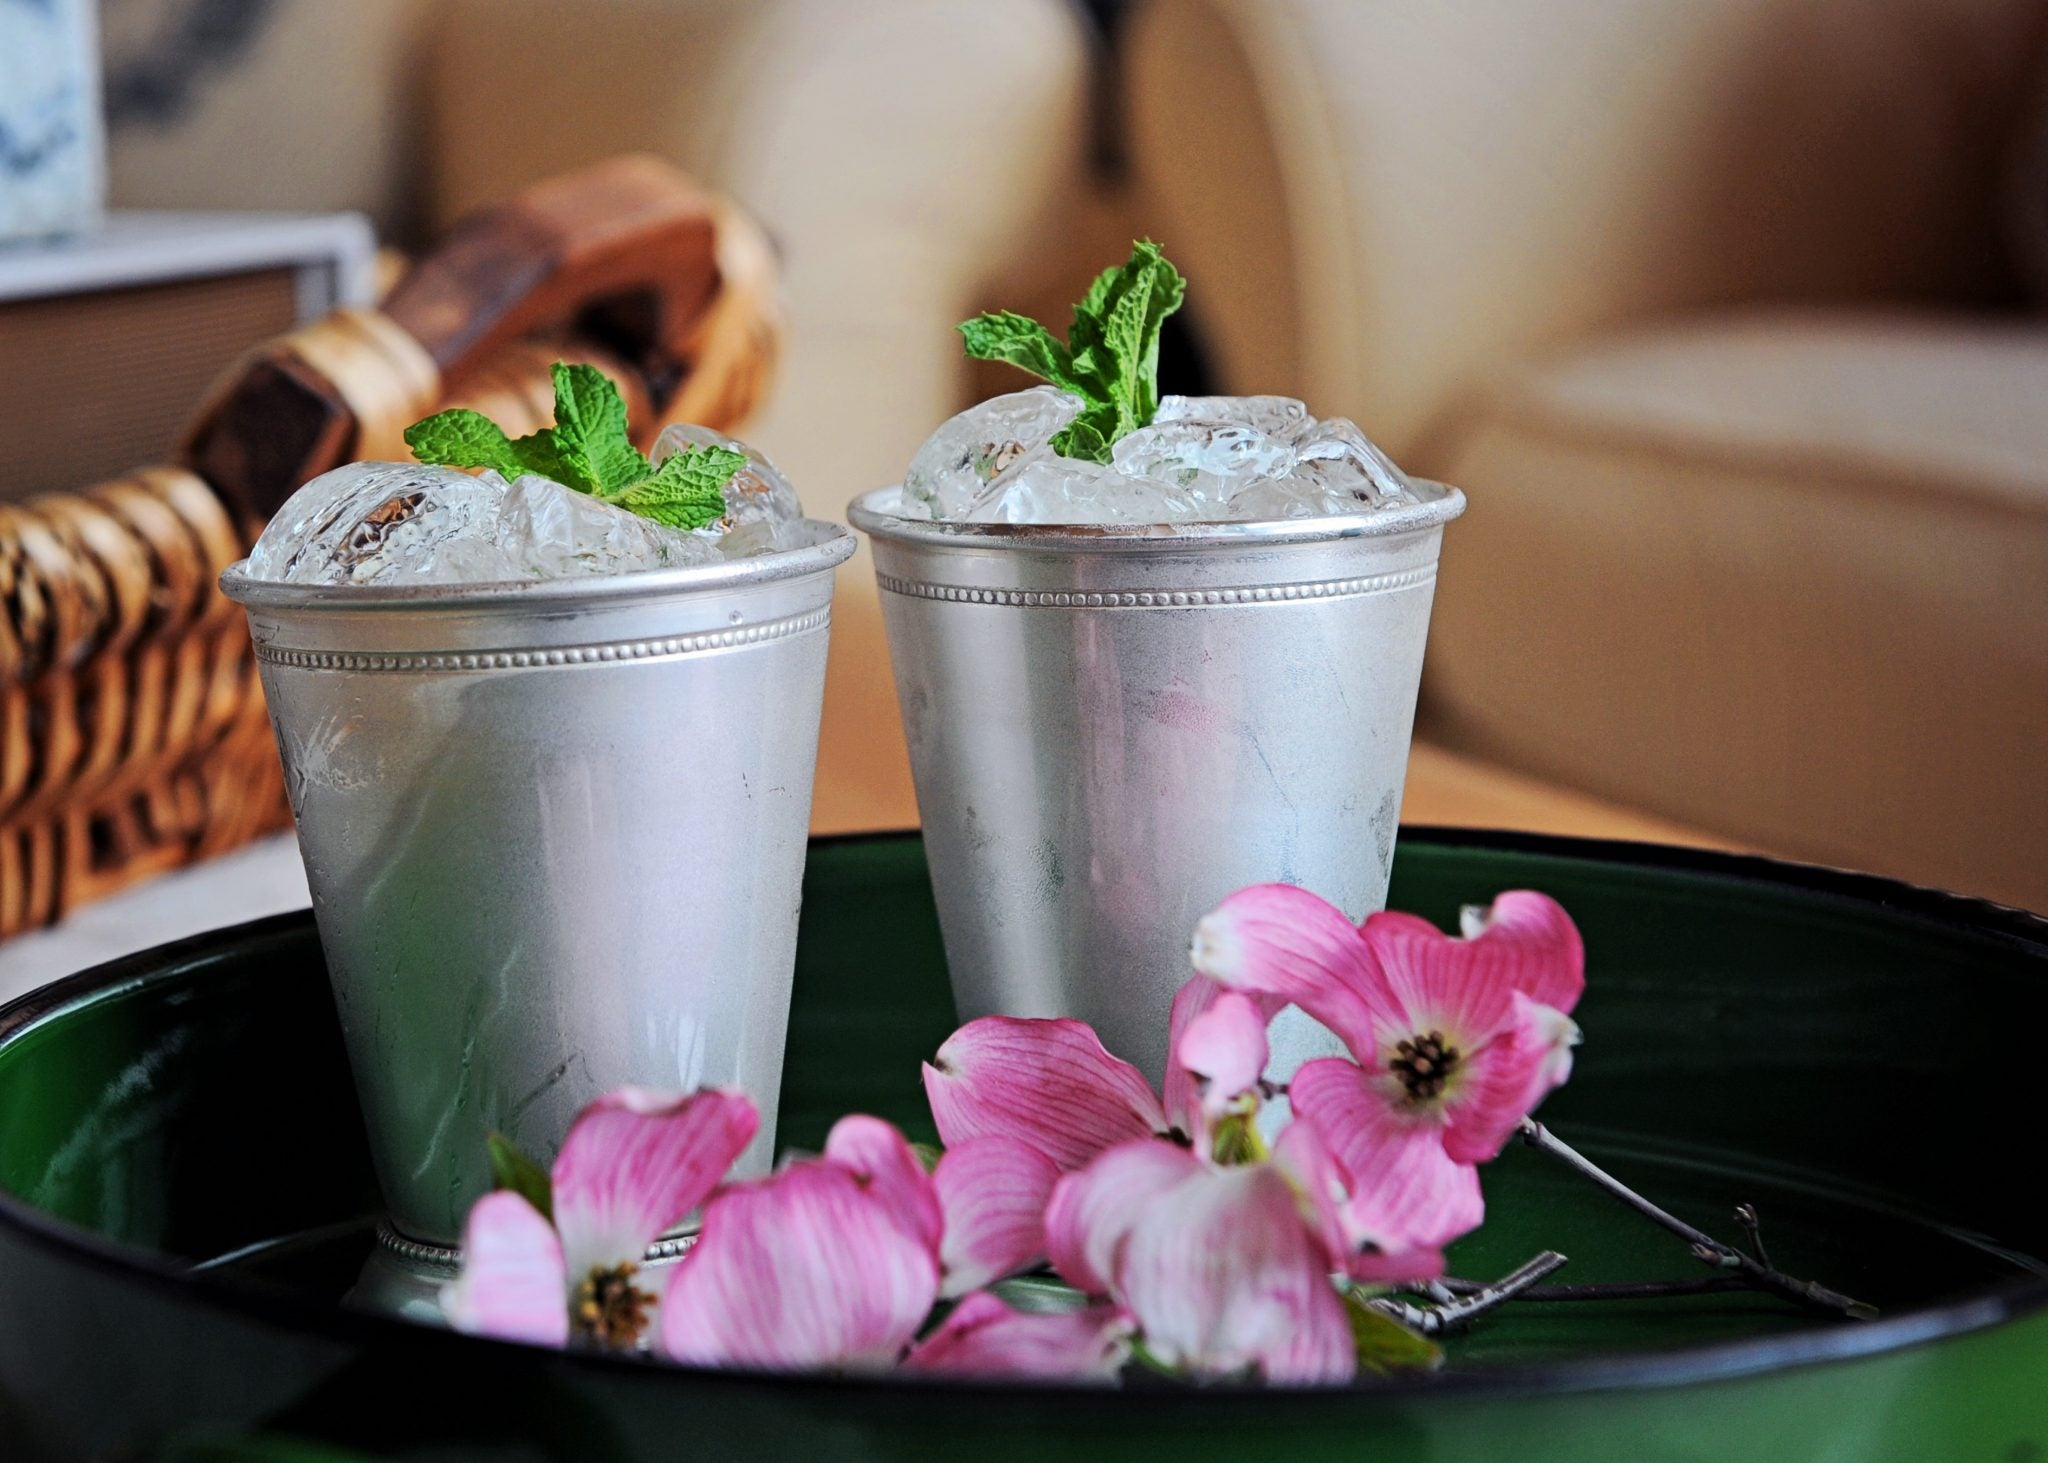 Classic Heritage Distilling Mint Julep for the Kentucky Derby